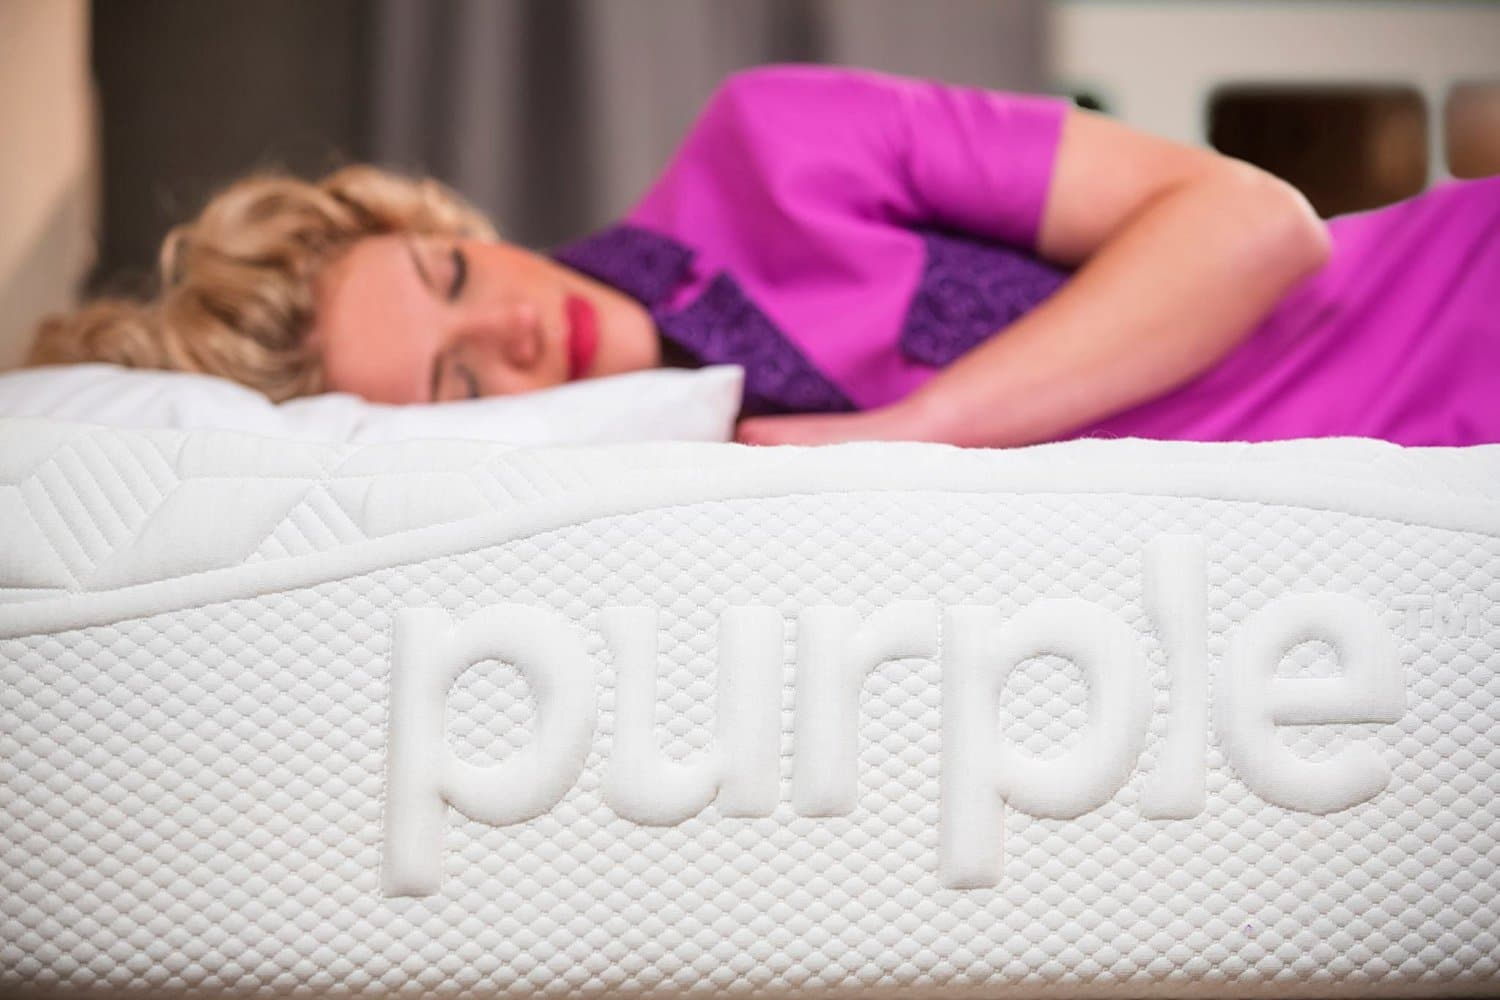 A woman sleeping on her Purple Bed